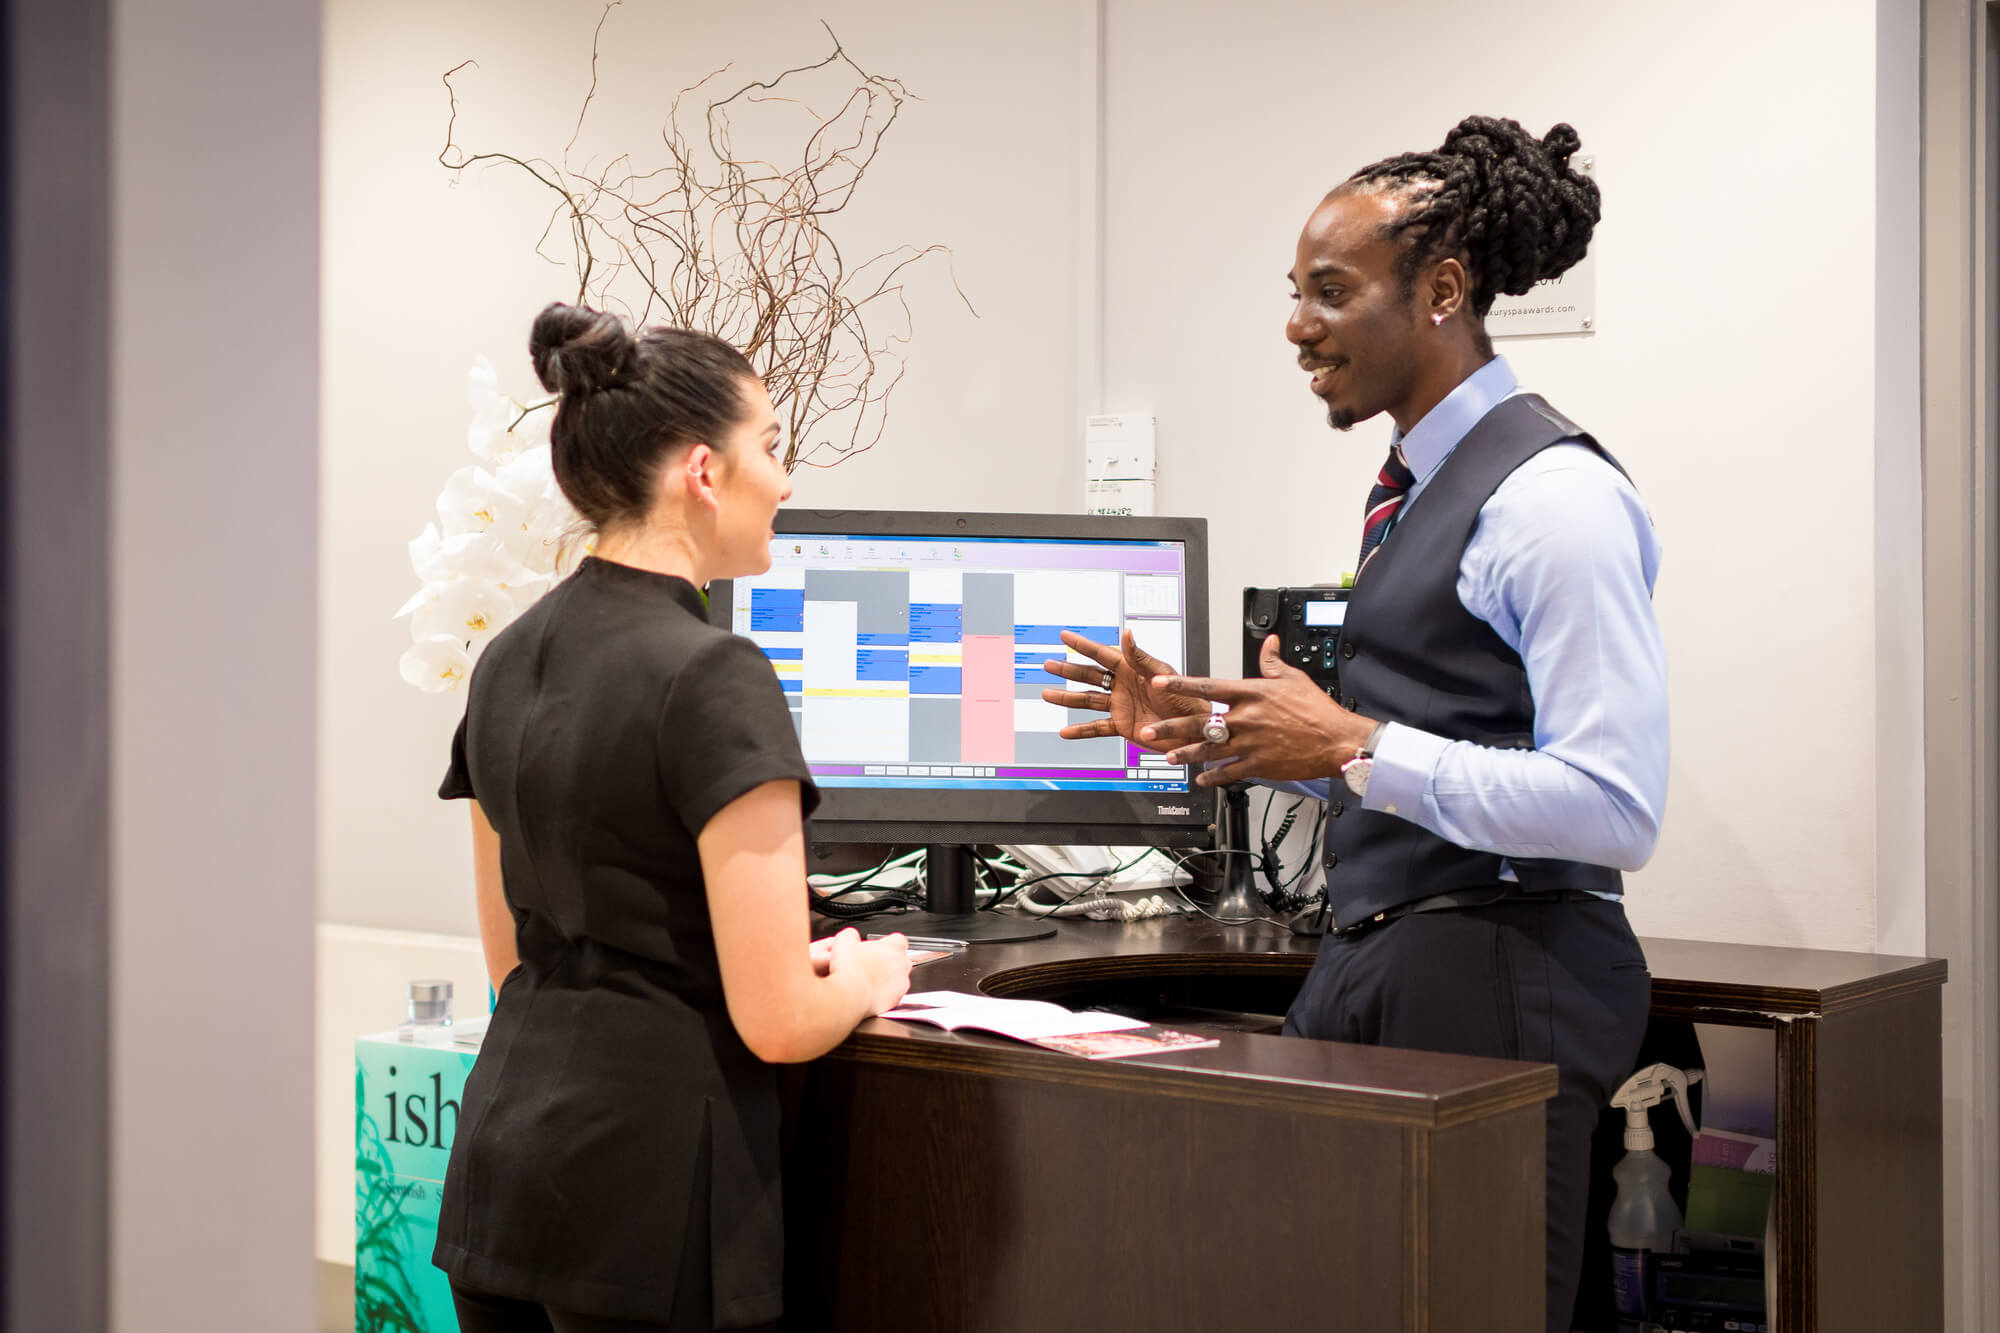 Spa student on work placement talking to spa employee at reception desk